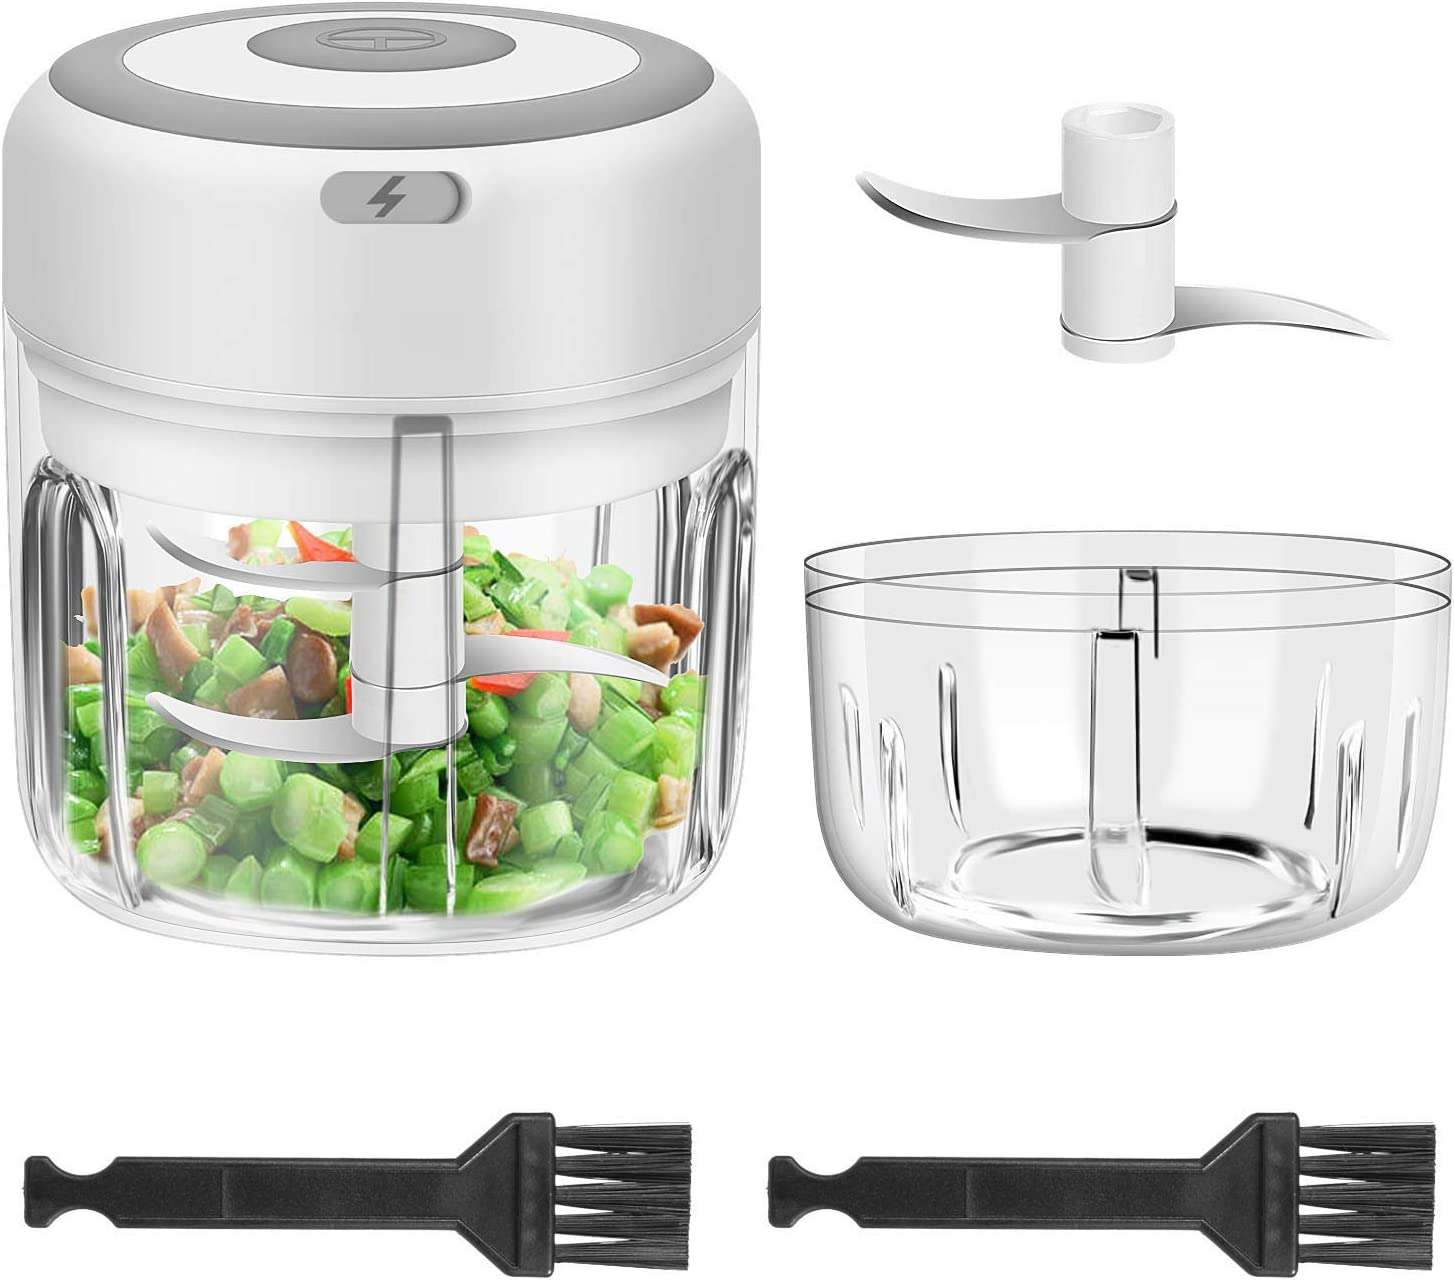 Cordless Garlic Chopper, 2PCS Electric Mini Food Chopper Portable Powerful Garlic Press Chopper for Pepper Chili Vegetable Nuts Mincer/Grinder, Baby Food Maker (250ml &100ml, White)